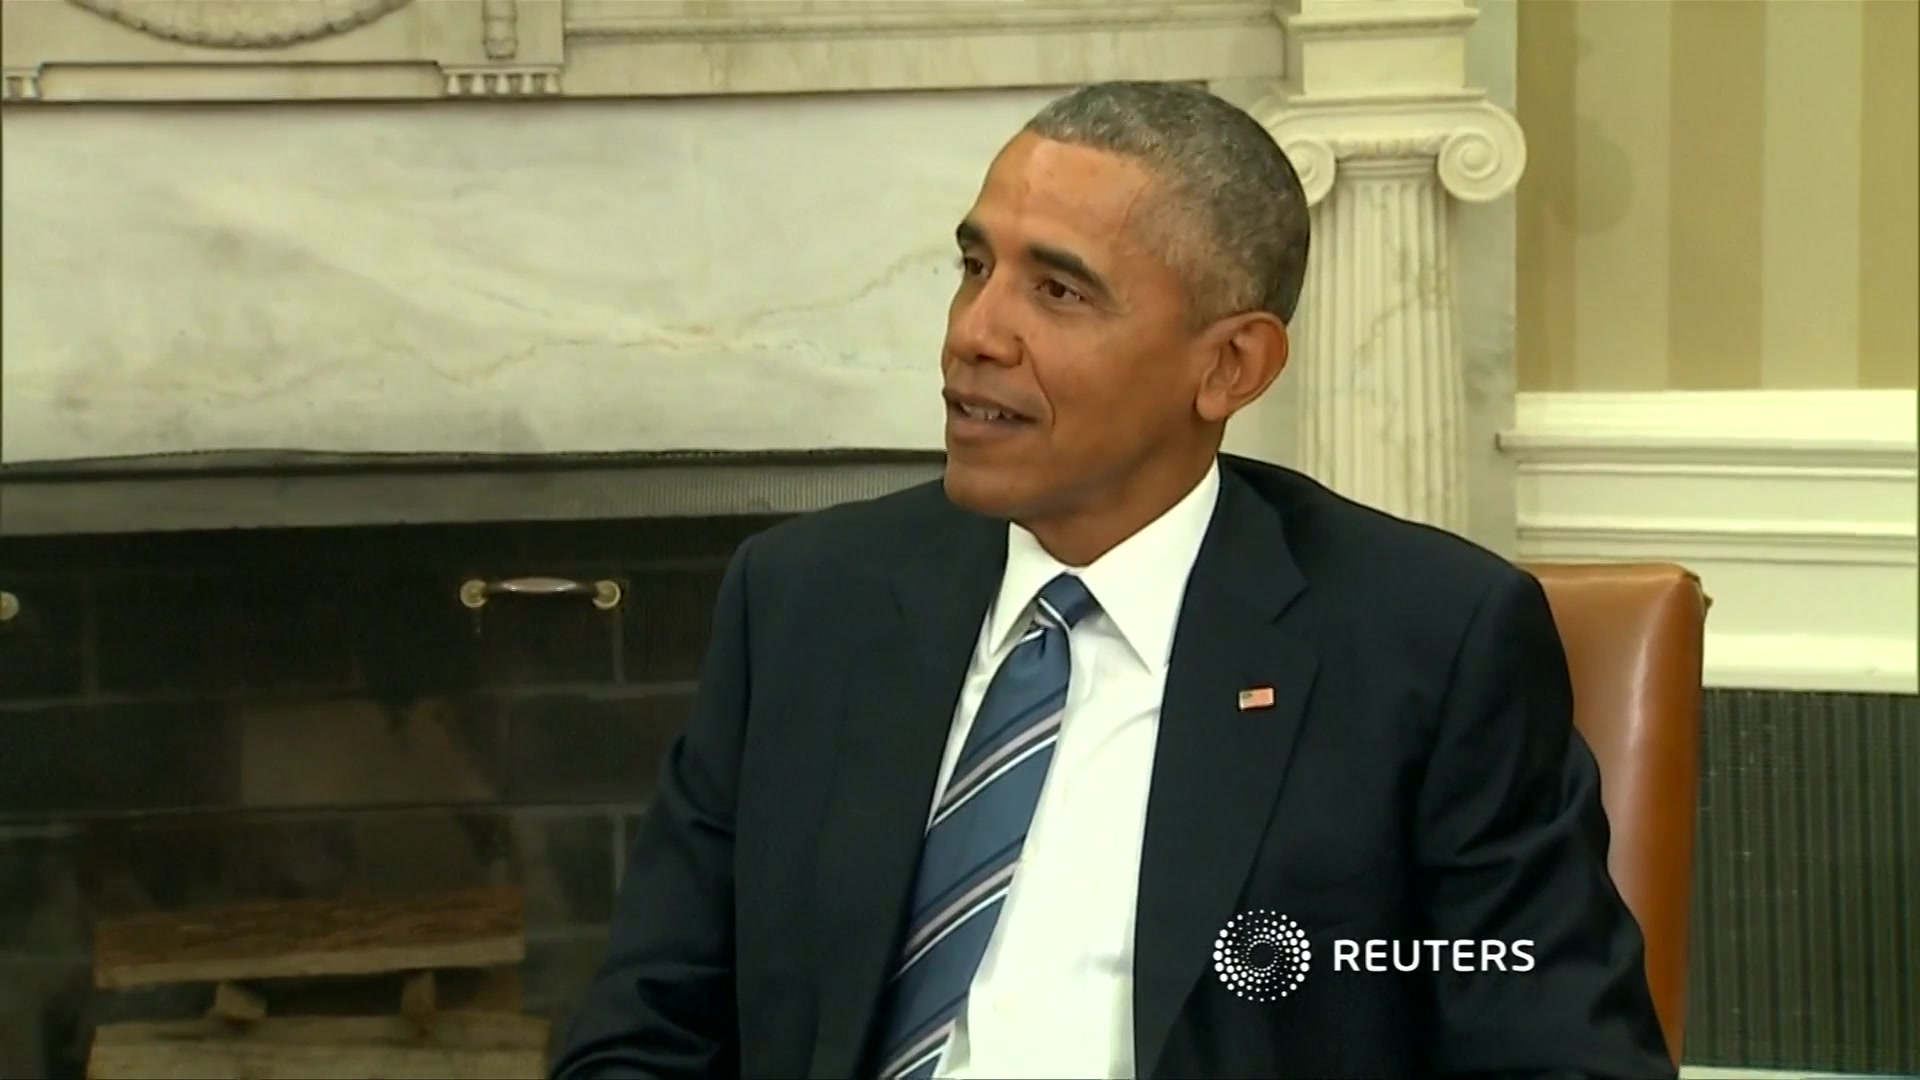 Obama: Republicans Risk Diminishing Credibility of Supreme Court